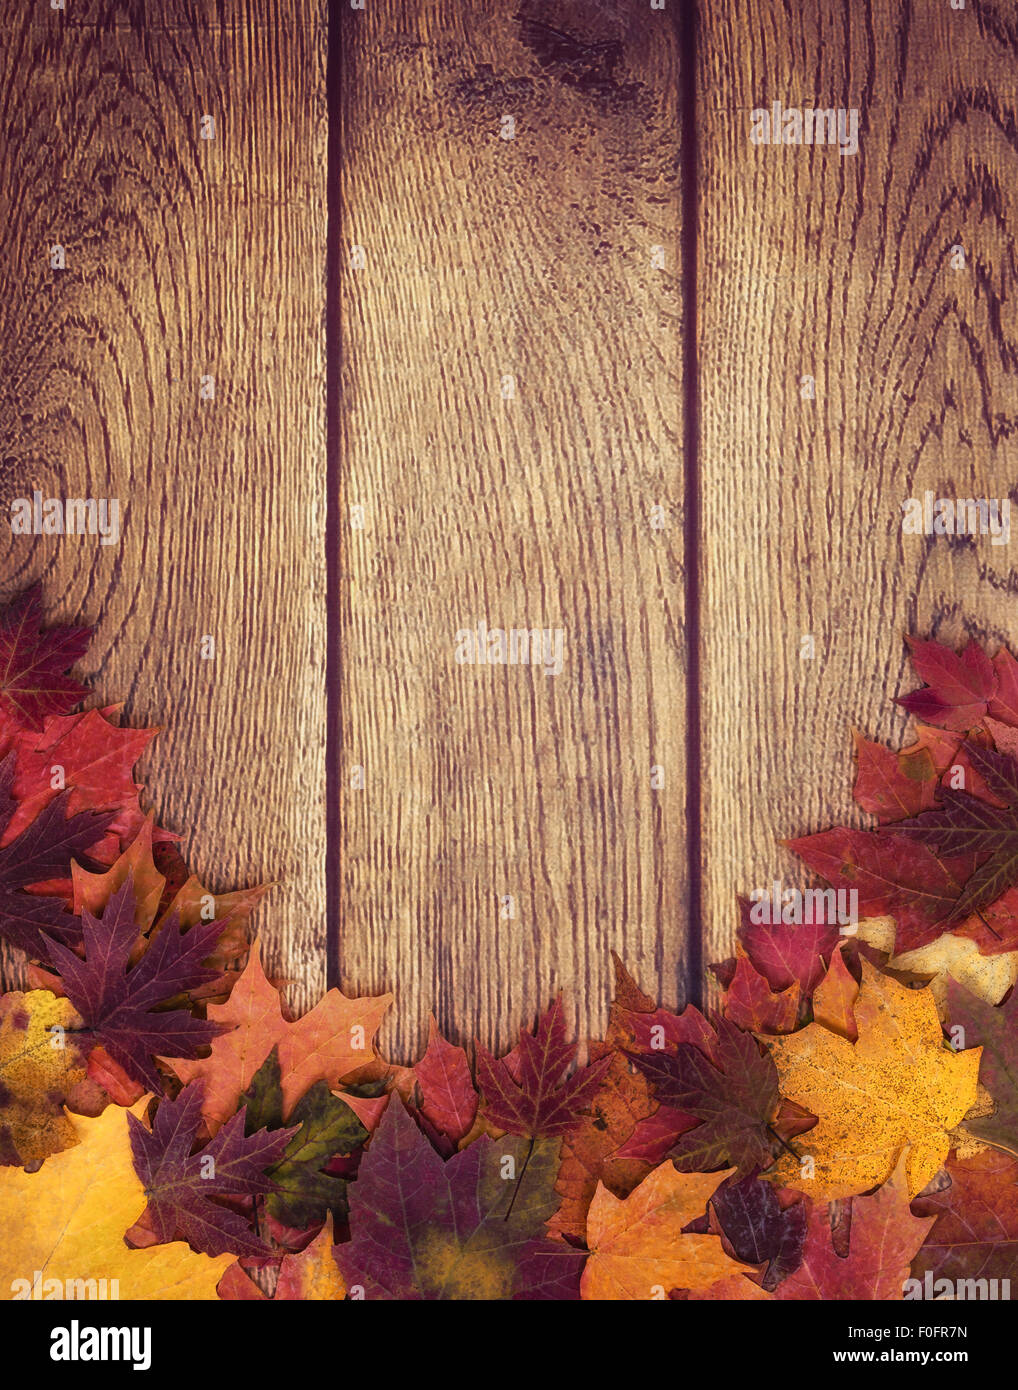 autumn leaves border against wooden background stock photo 86399369